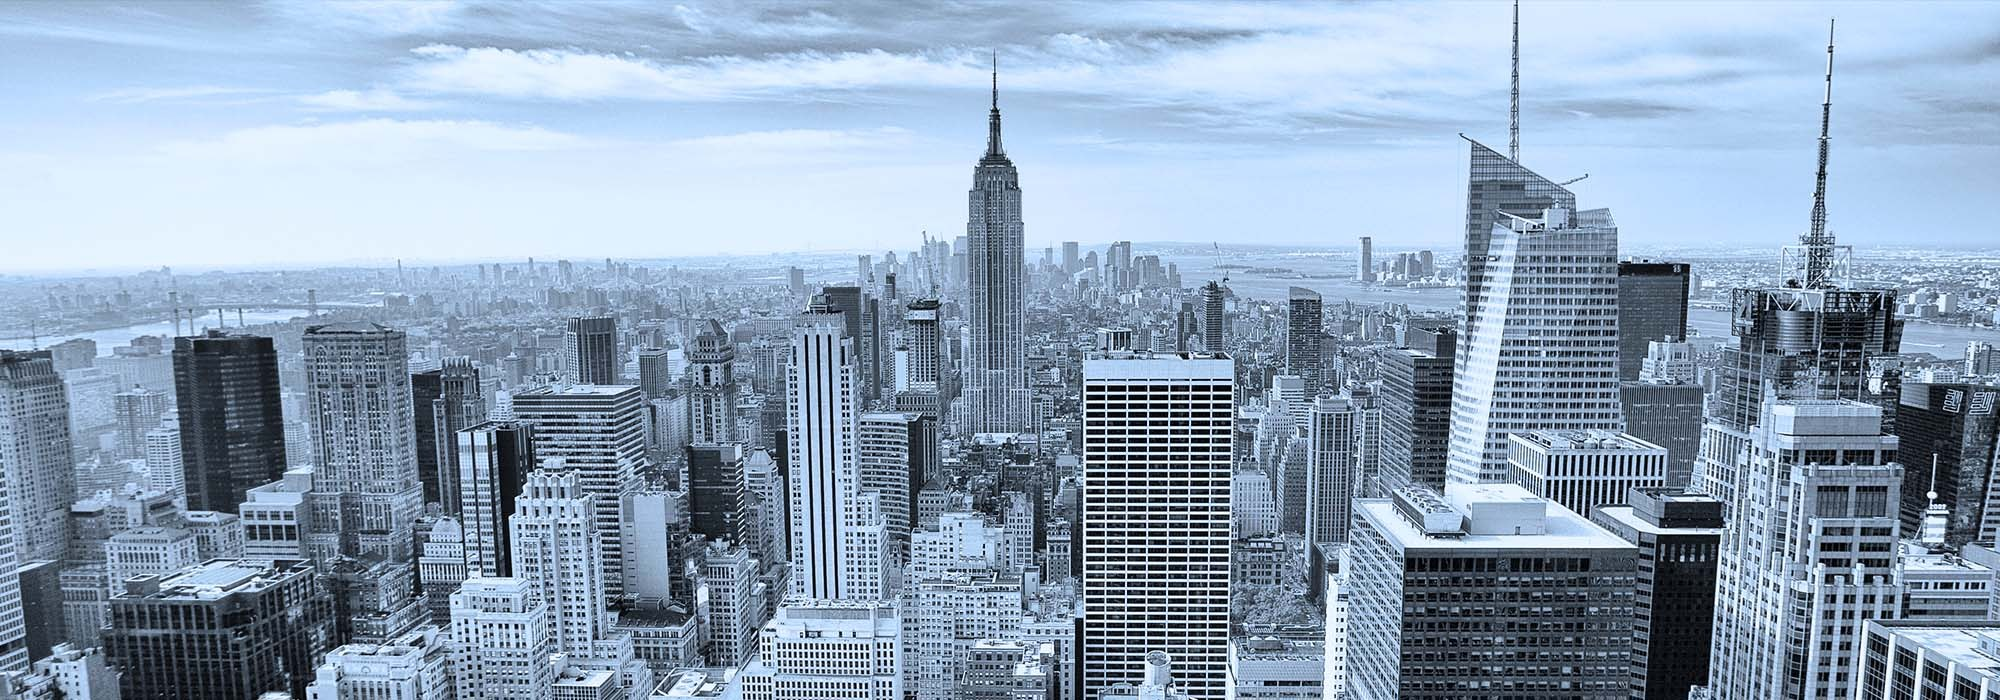 New York skyline centered on the empire state building